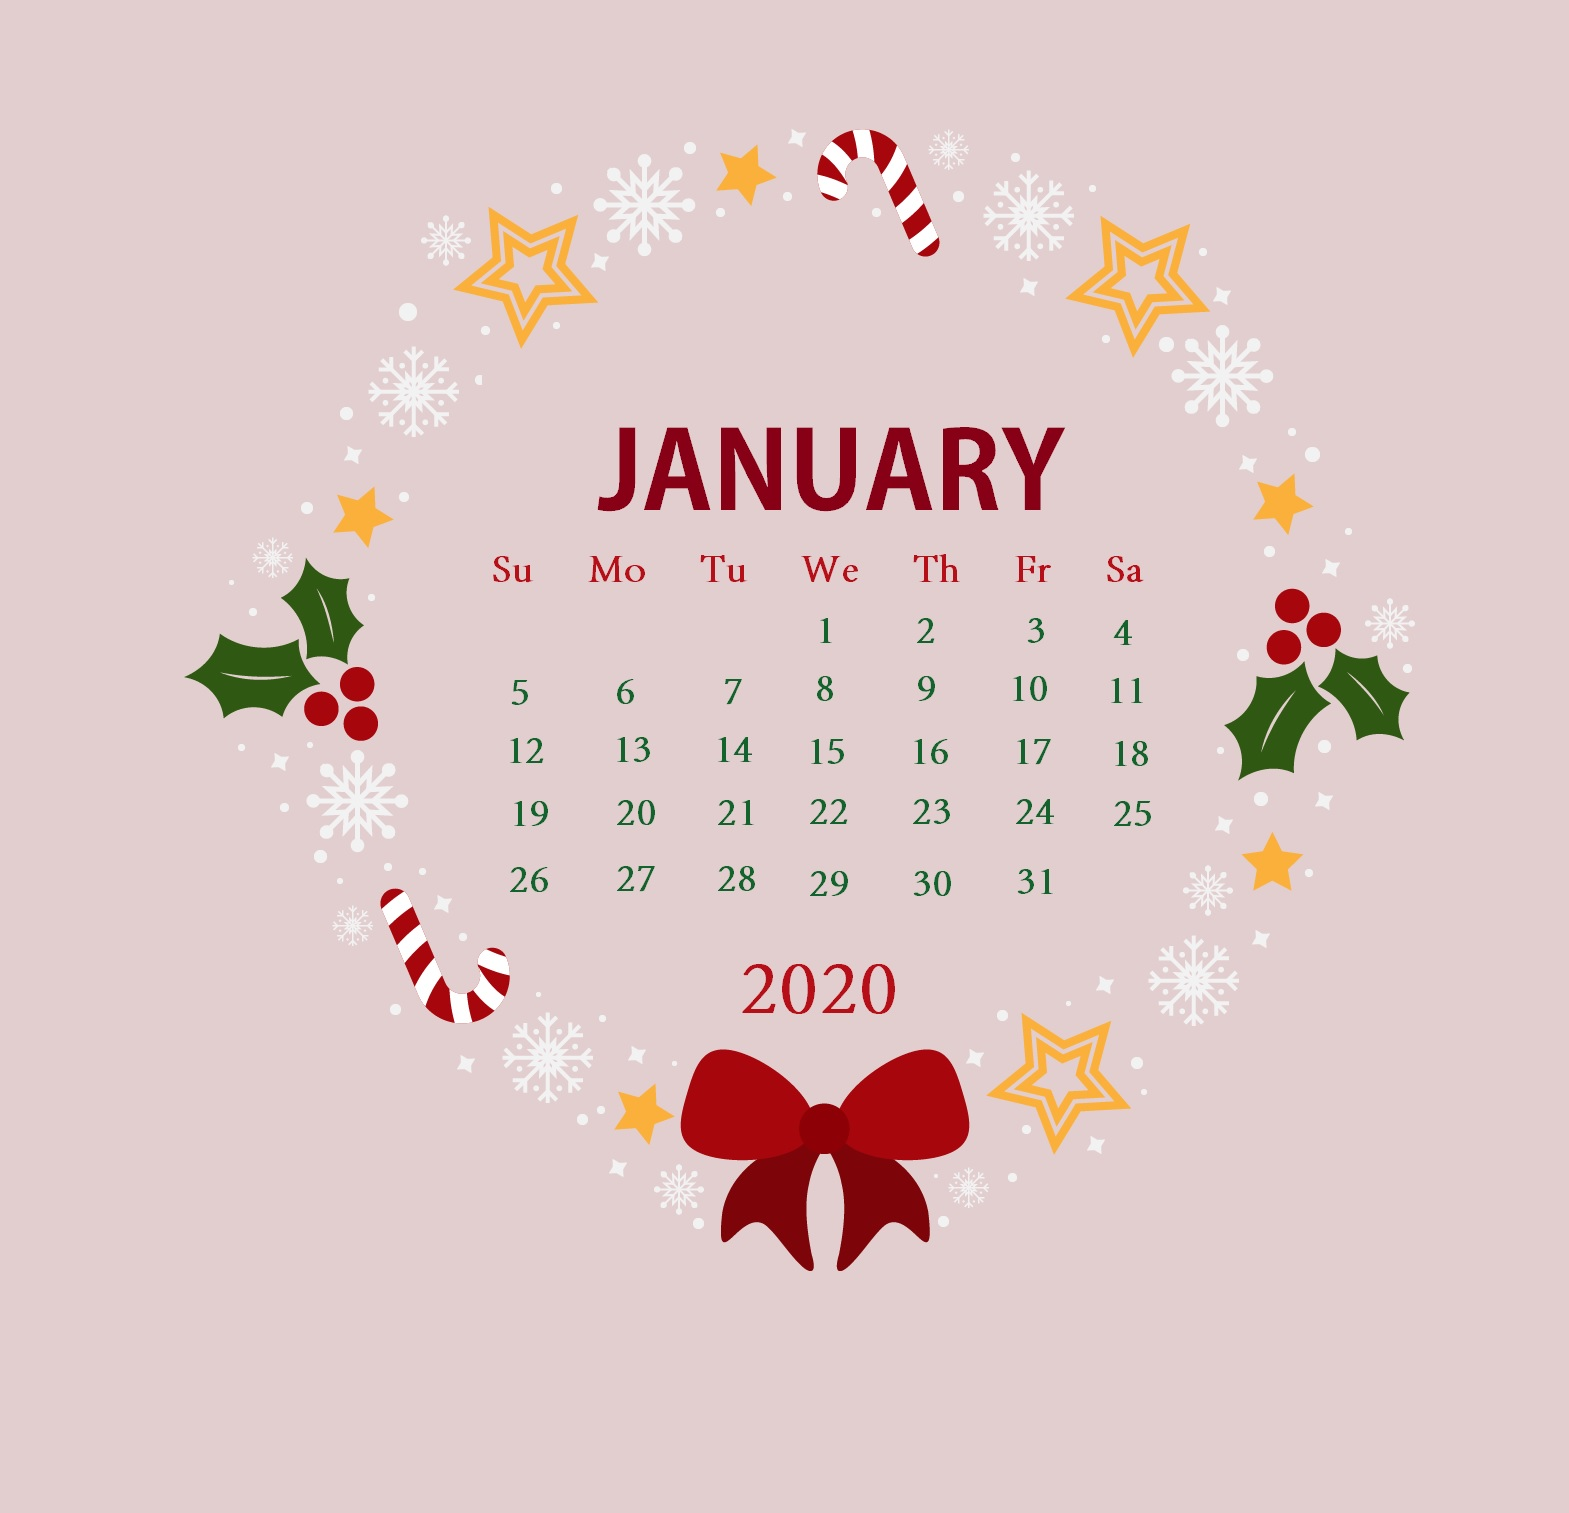 iPhone January 2020 Wallpaper Calendar Latest Calendar 1569x1513